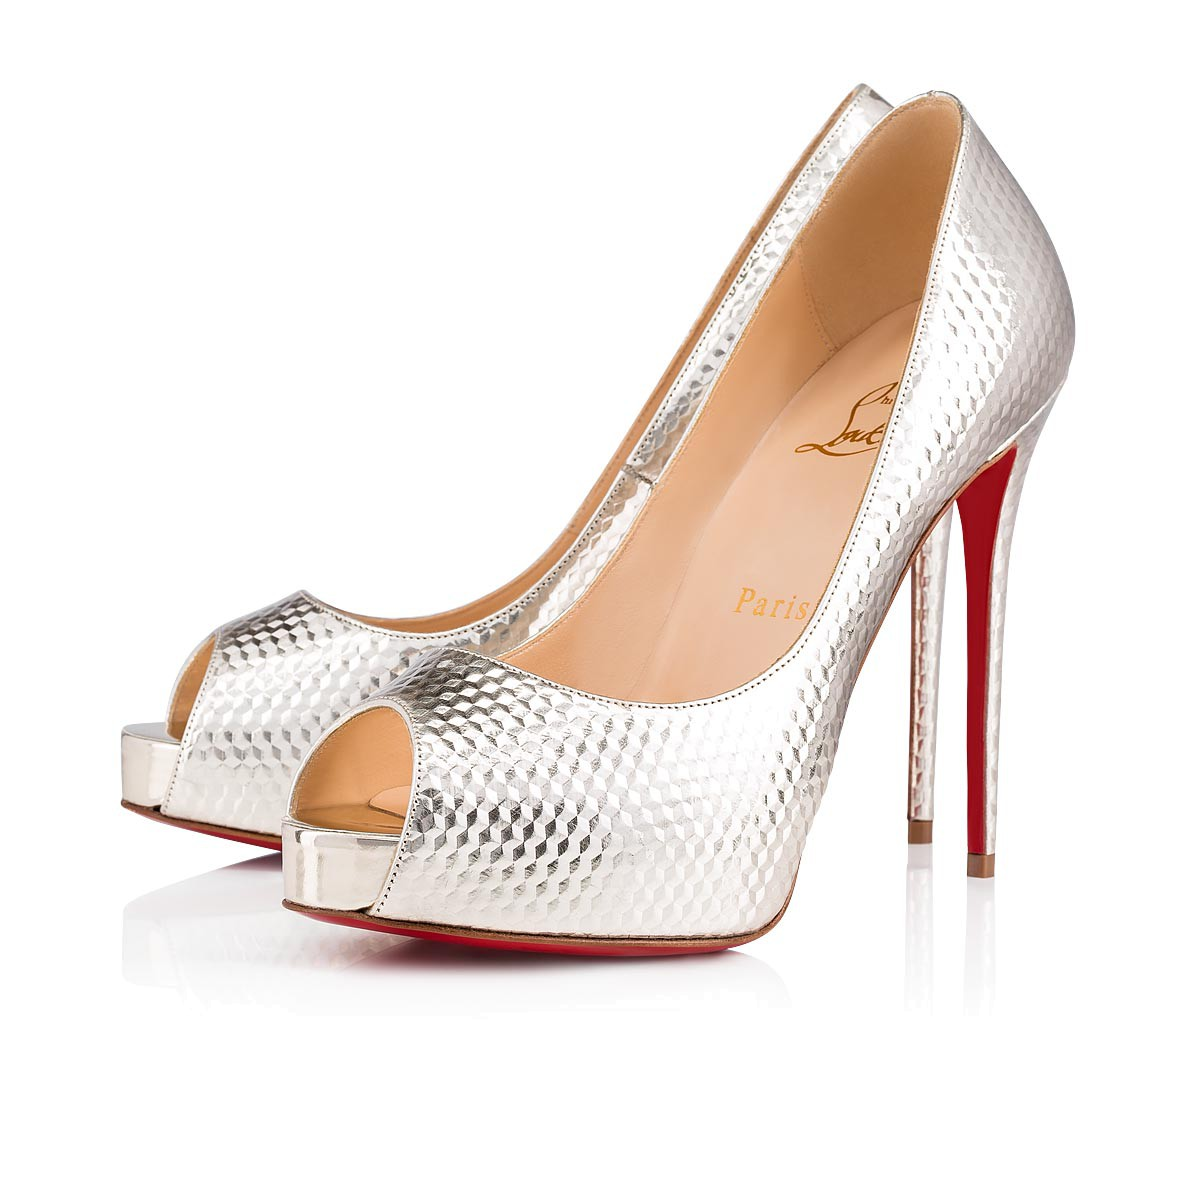 Women Shoes - New Very Prive - Christian Louboutin